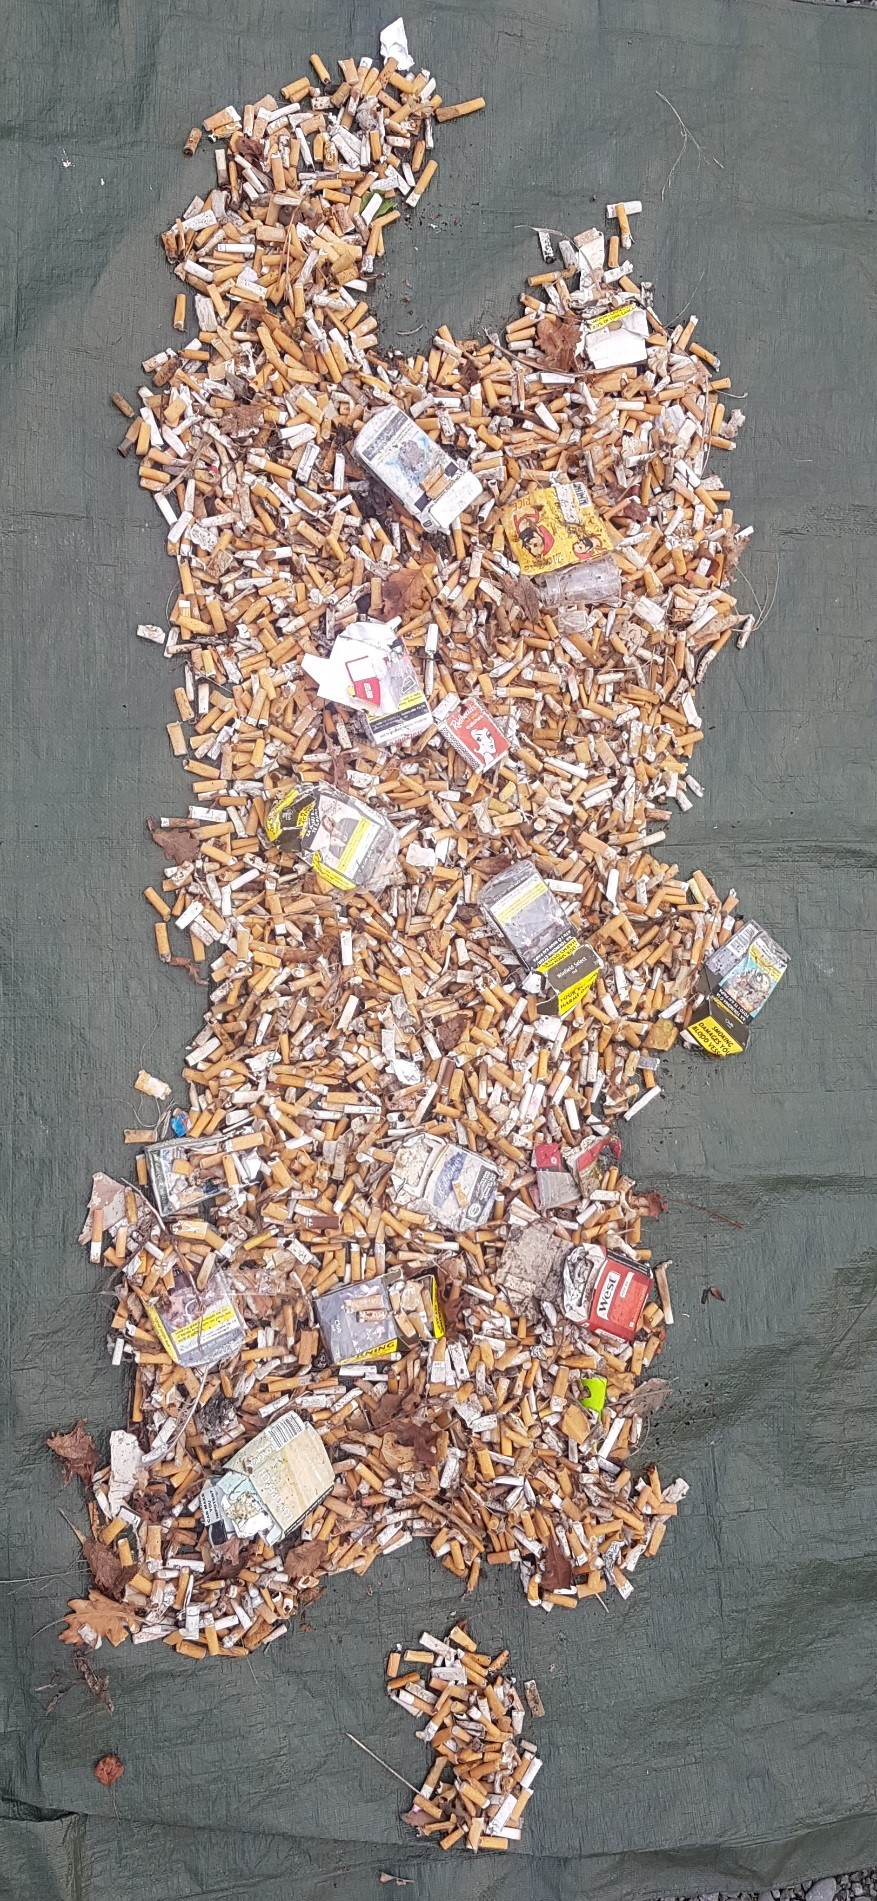 All smoking trash items collected by the Te Ha - Waitaha team arranged into the shape of the South Island.